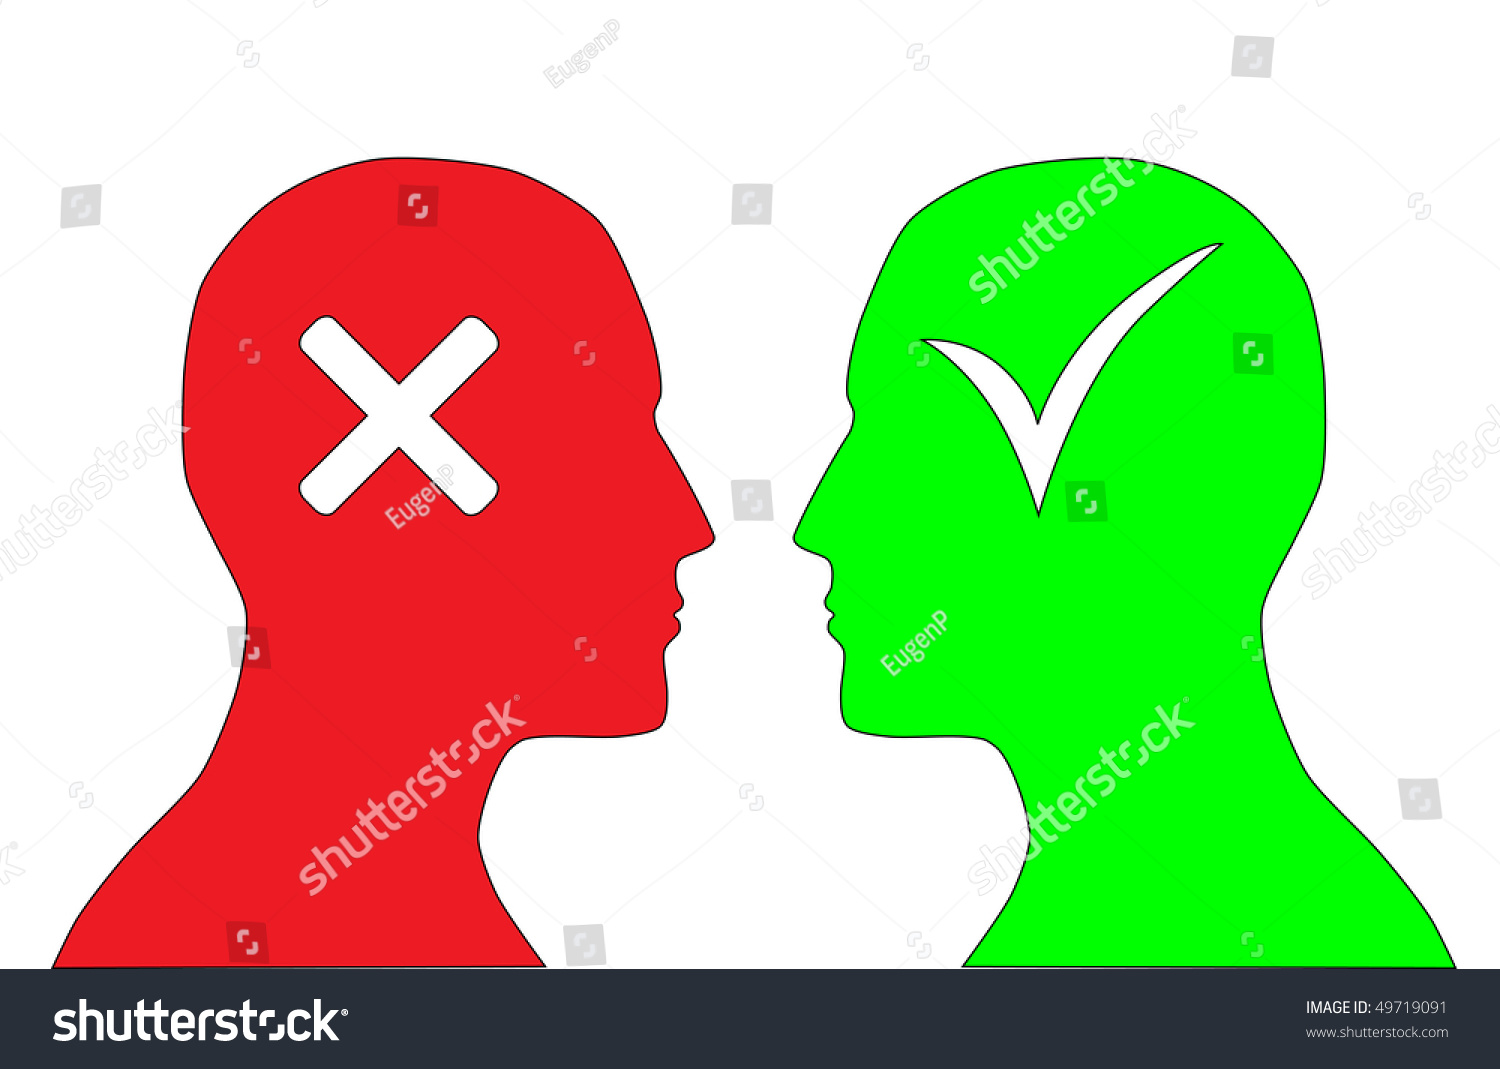 Yes no symbols stock vector 49719091 shutterstock yes and no symbols buycottarizona Gallery